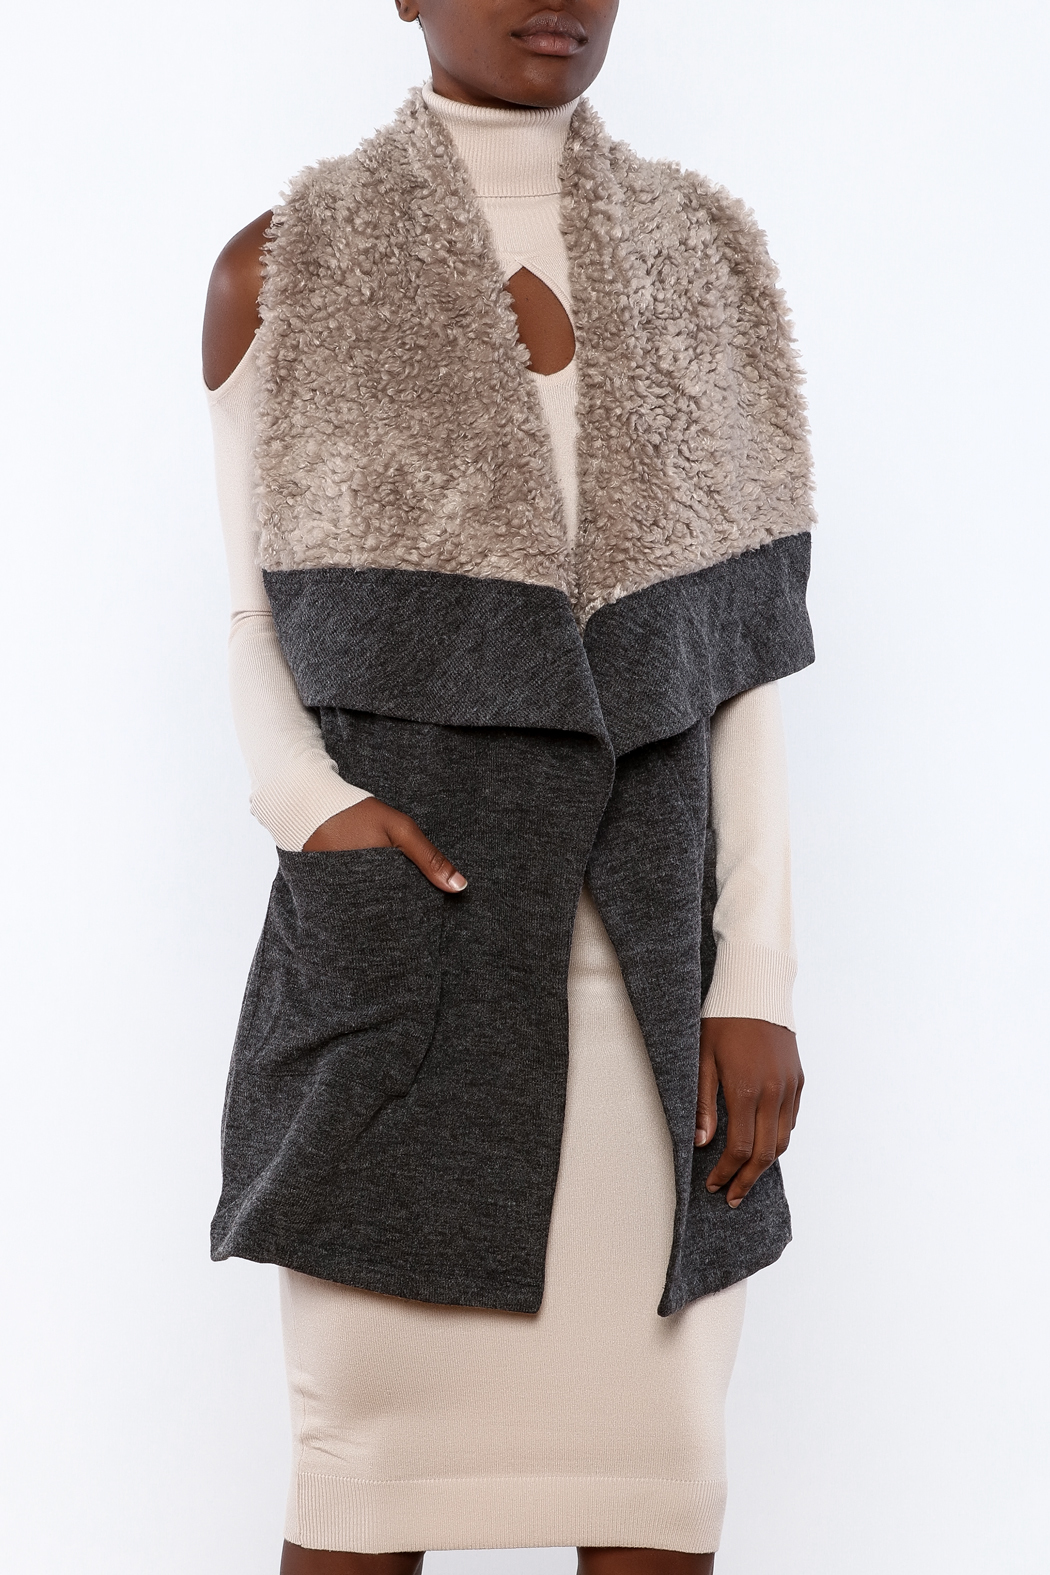 The fall style you're looking for. With large and small diamond-quilted panels and a detachable faux fur collar, this Dennis Basso vest is perfect over a long-sleeved tee or /5(13).